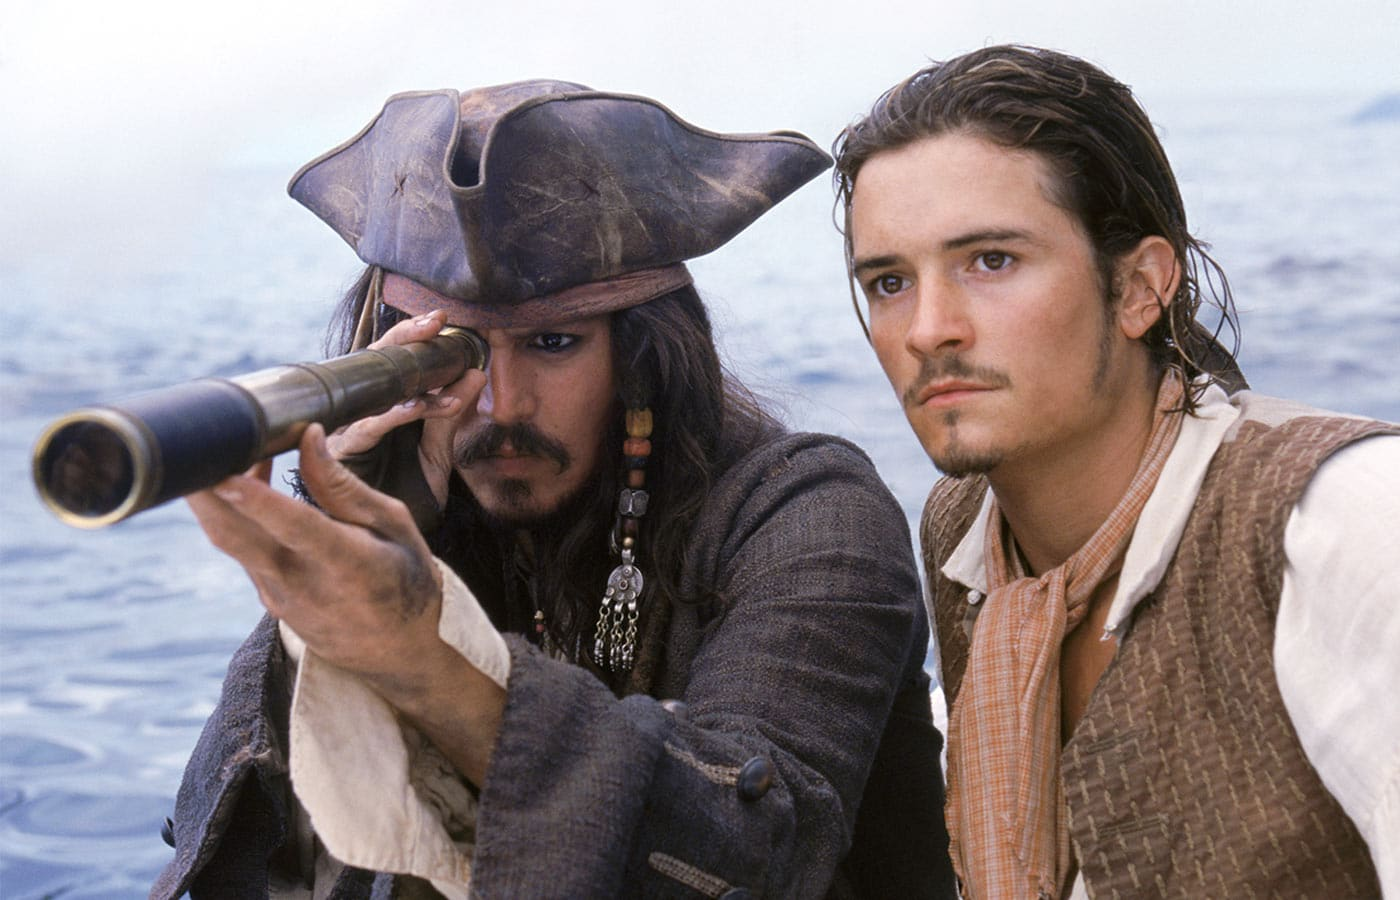 Photo of Johnny Depp and Orlando Bloom on set in the moviePirates of the Caribbean